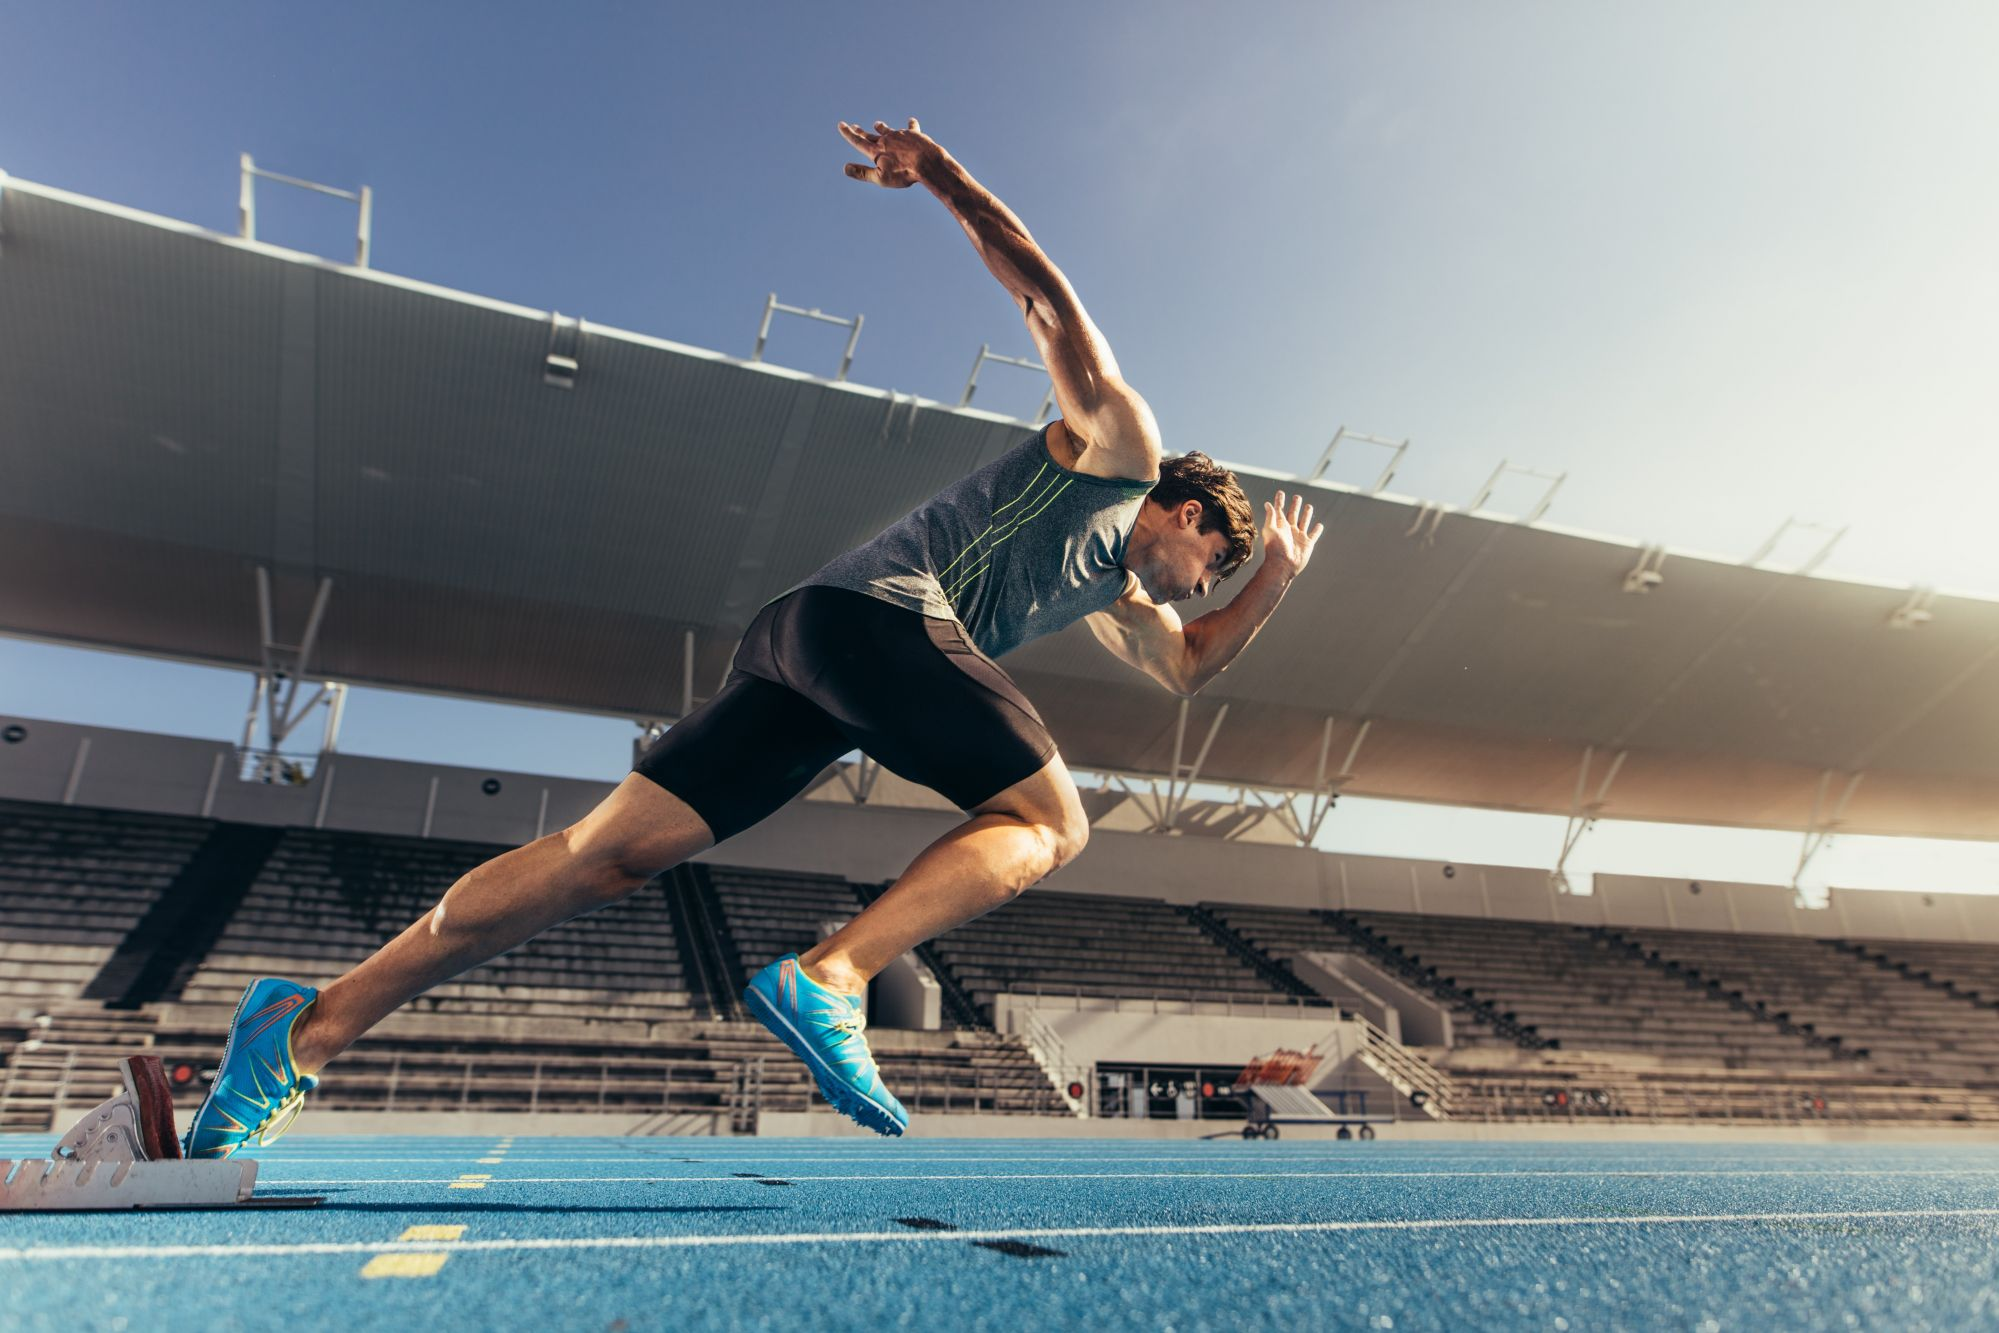 The Olympic Village needs to keep its athletes well-fed so they can excel at peak performance (Photo: Adobe Stock)